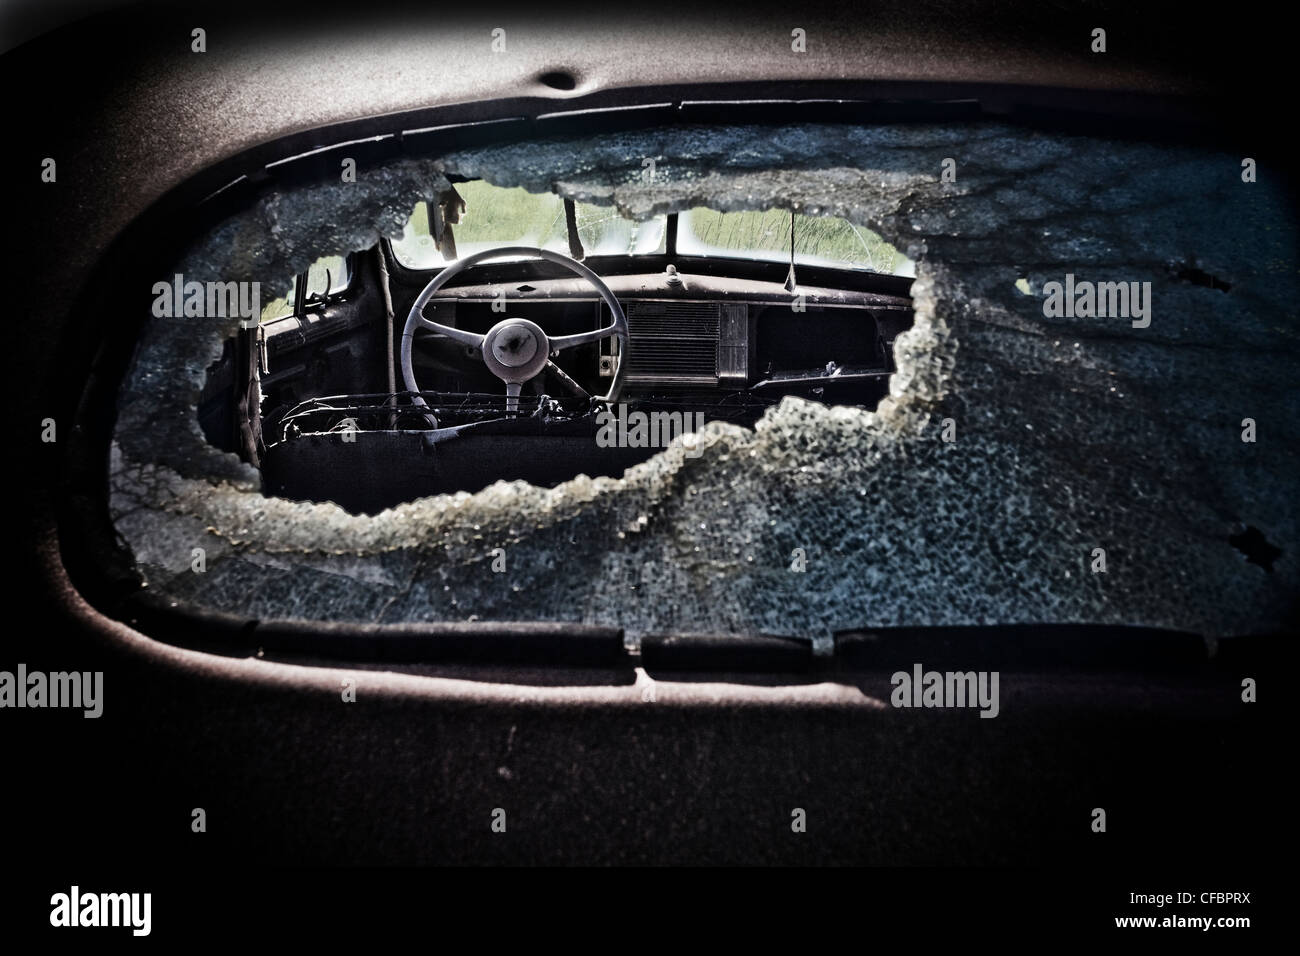 View though old Chevy's smashed rear window, Saskatchewan, Canada - Stock Image